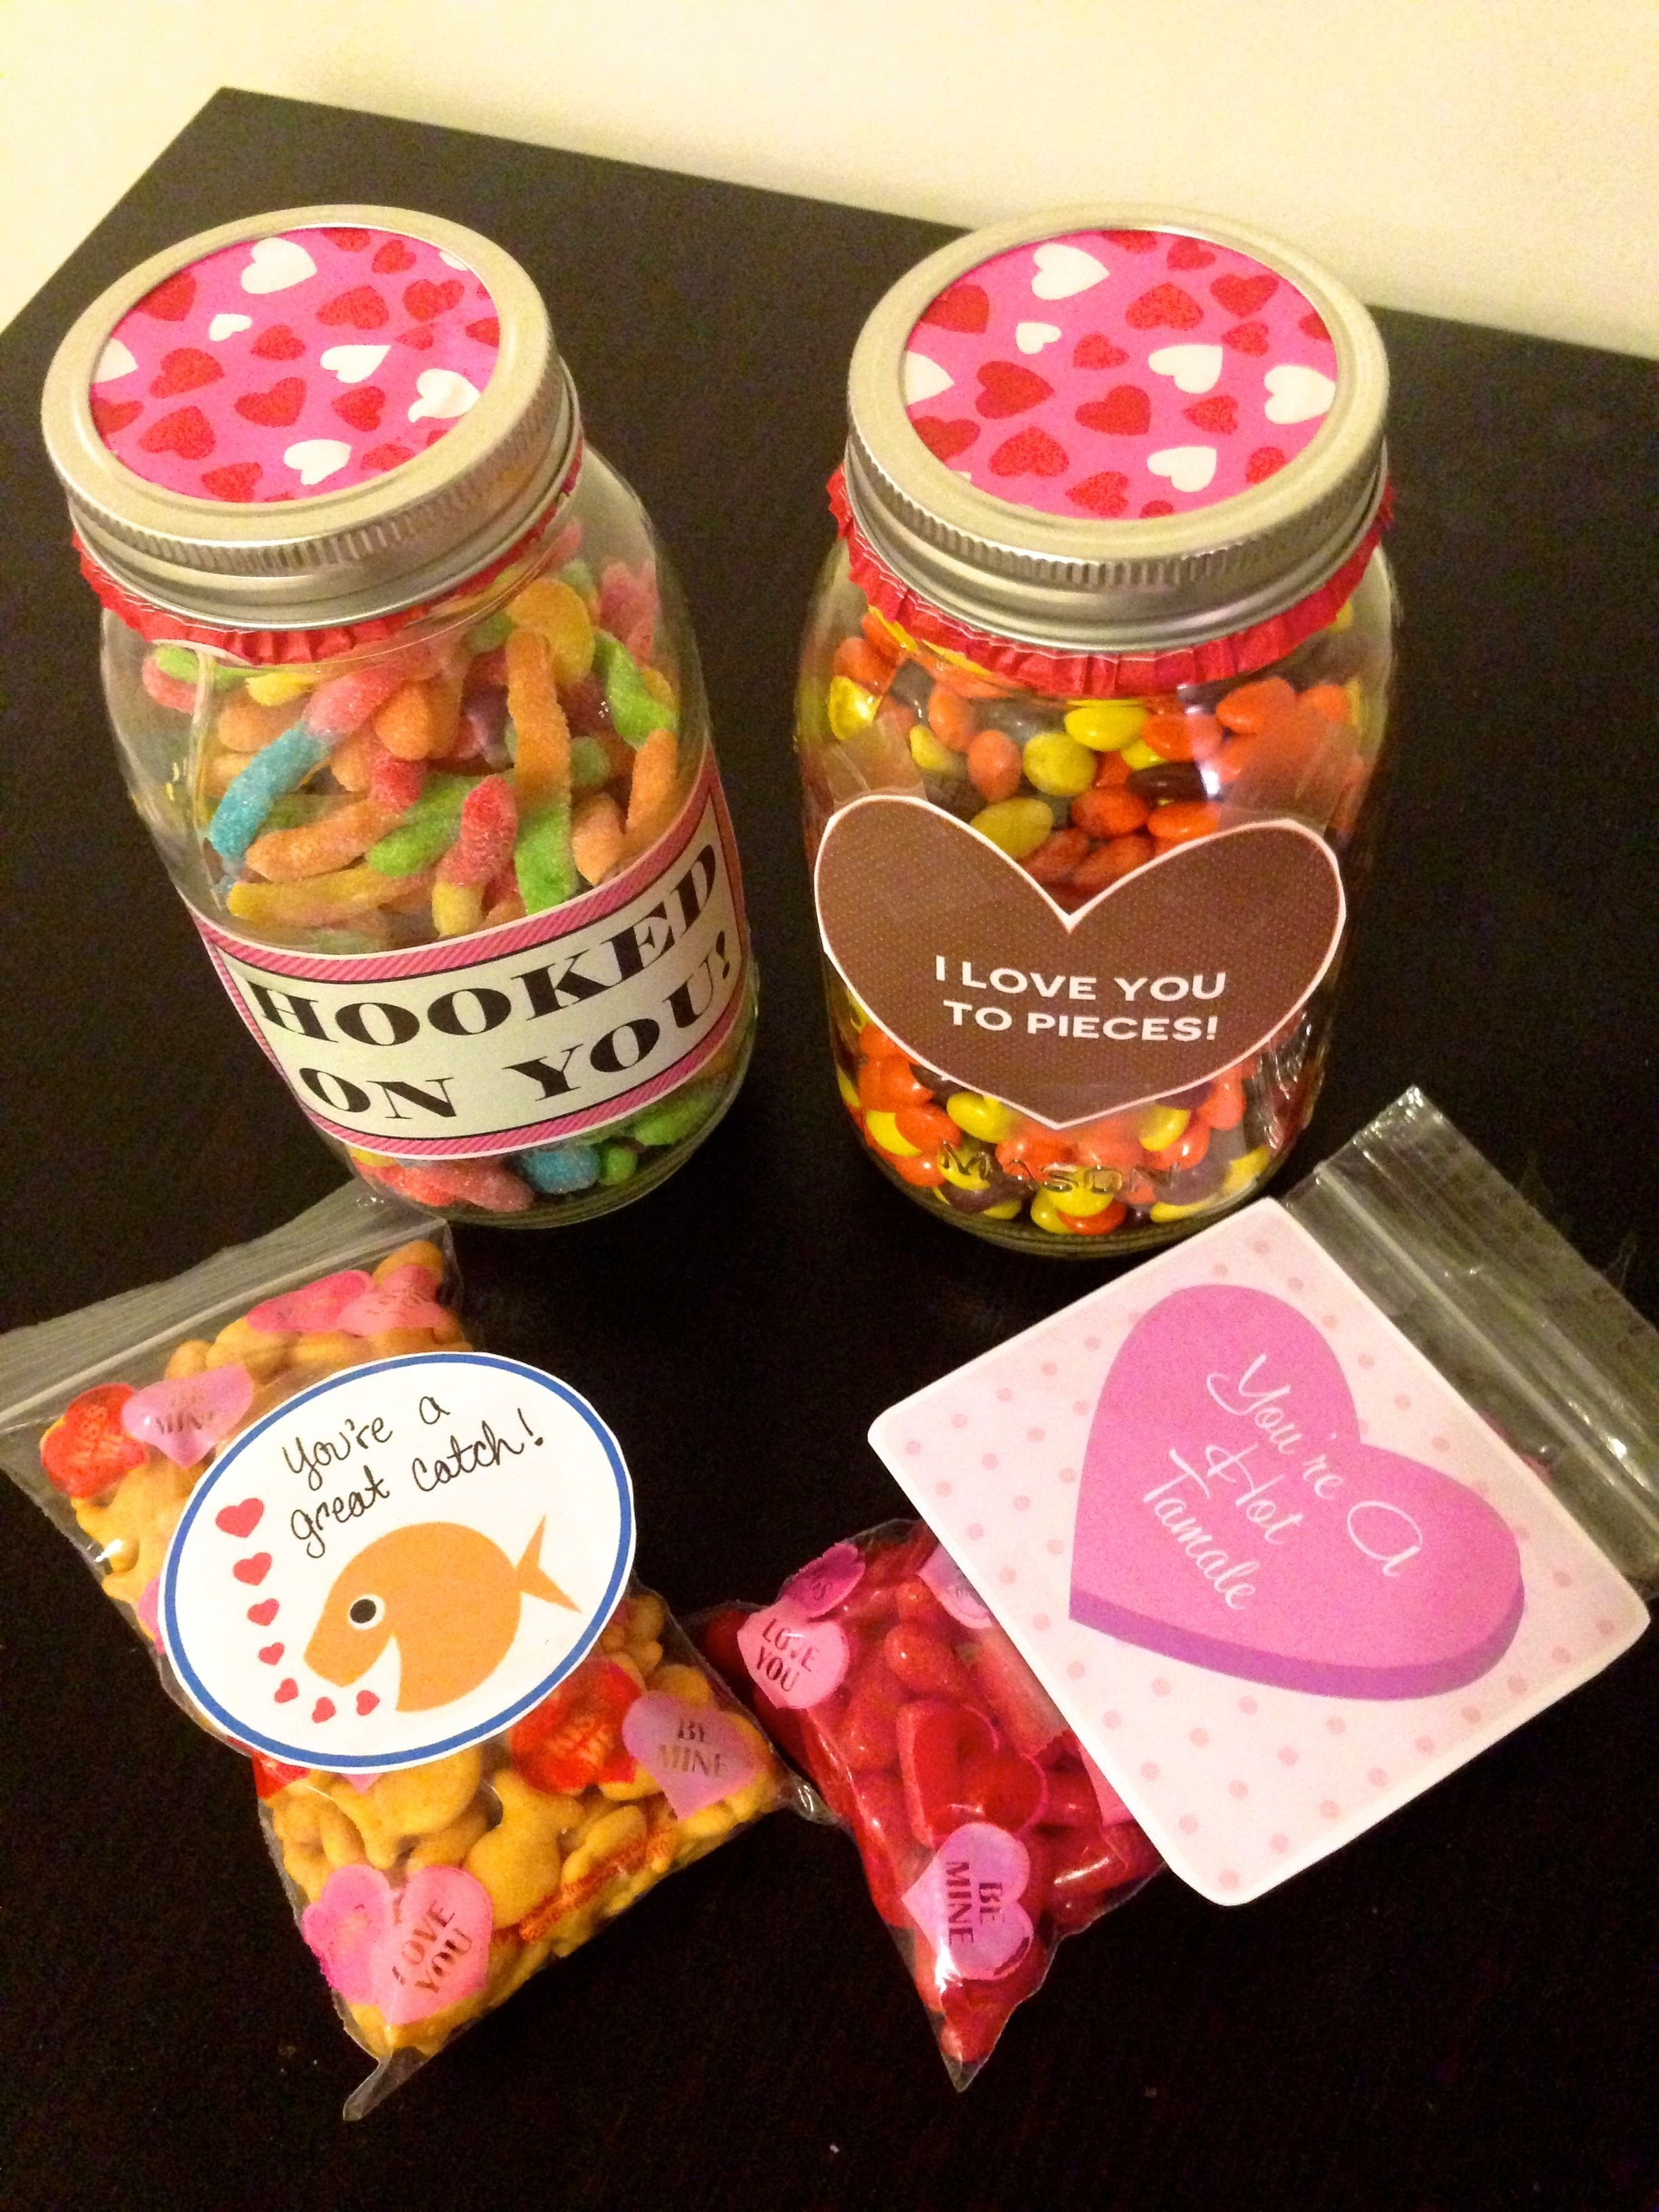 10 Best Romantic Birthday Gift Ideas Her romantic birthday ideas for her on a budget prom dresses and beauty 1